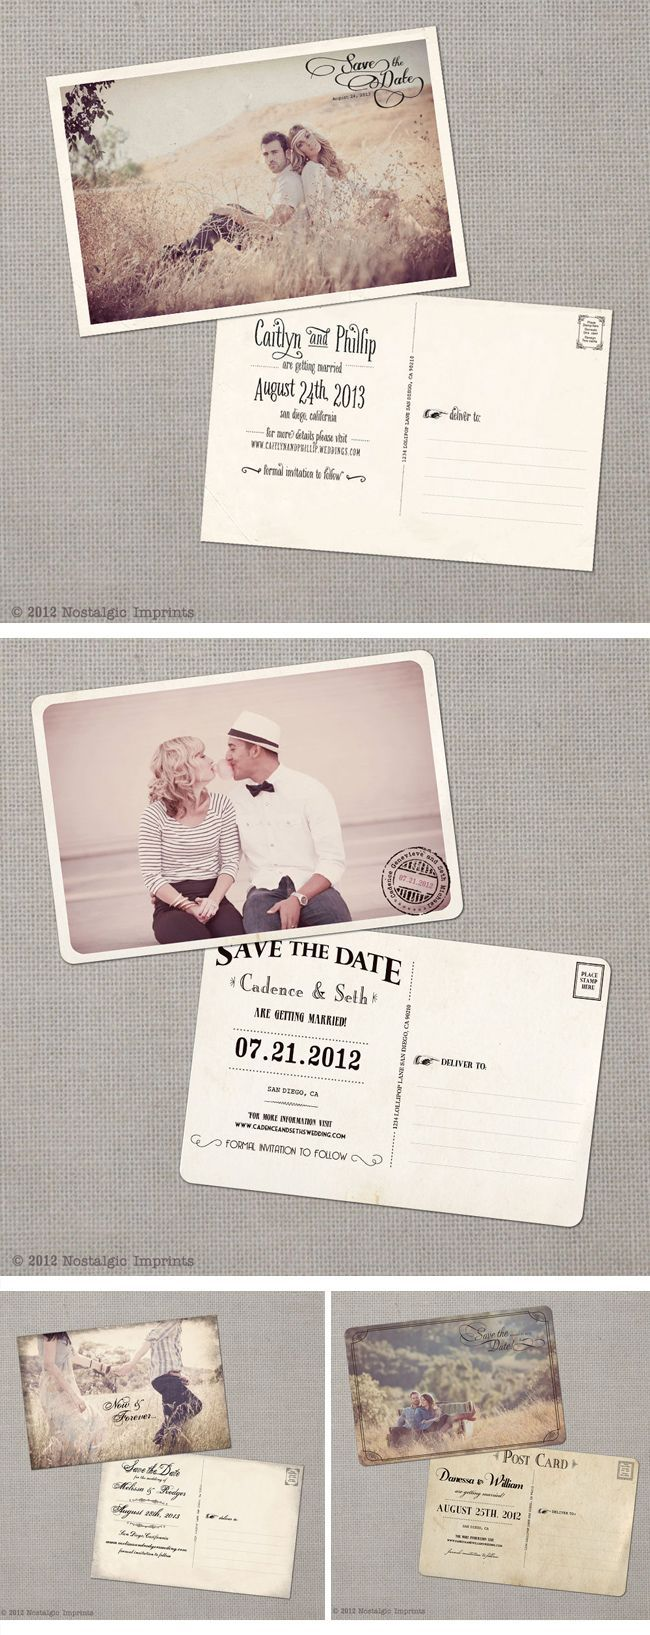 396 Best Save The Date Wedding Invitations Stationary Images On